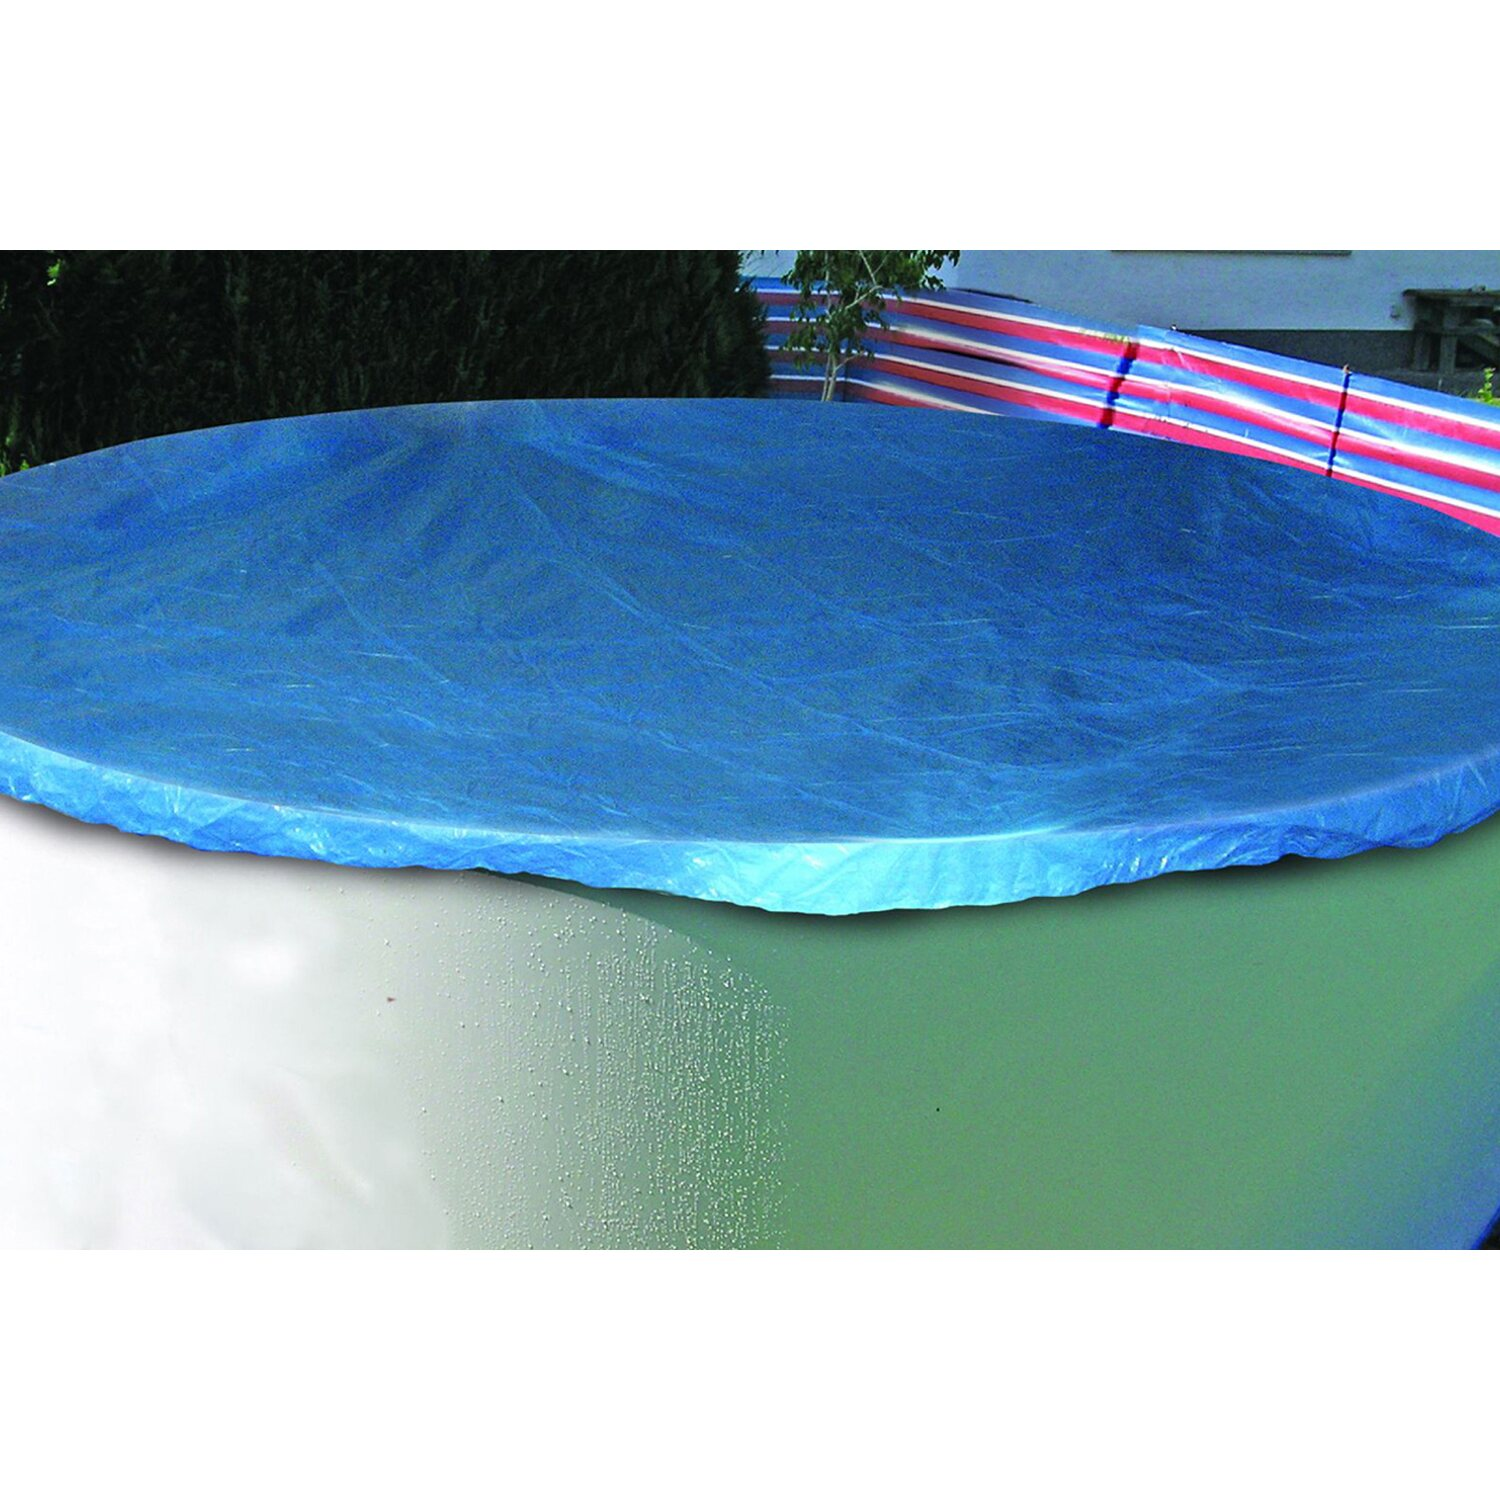 Summer fun pool abdeckplane standard 450 bis 460 cm for Abdeckplane obi